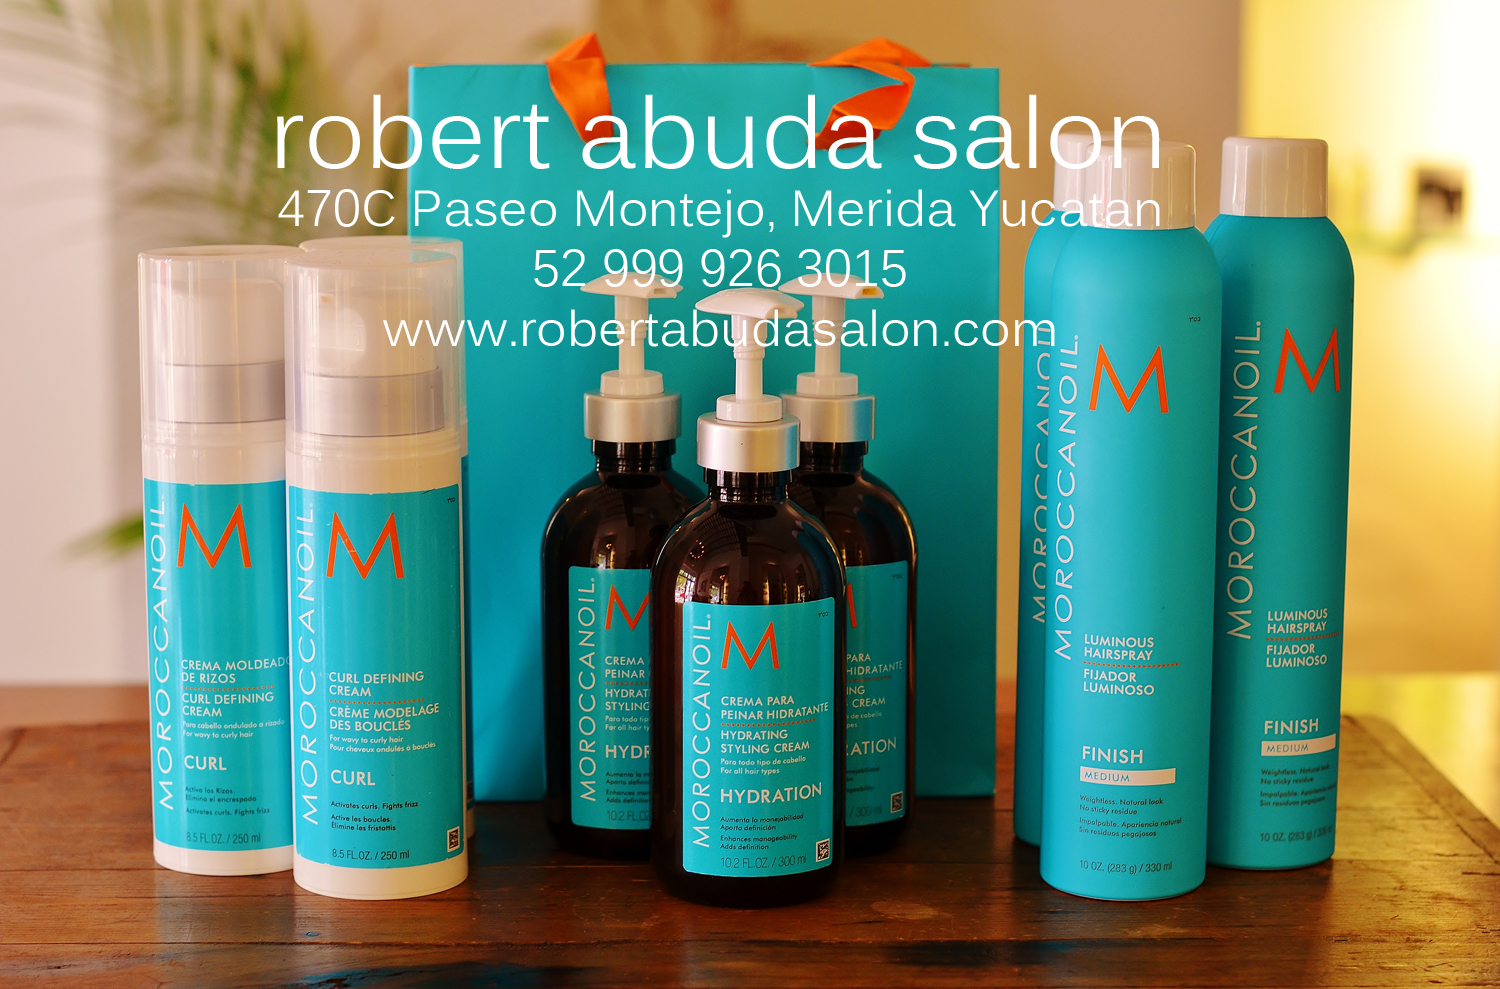 moroccan oil salon de belleza merida 5